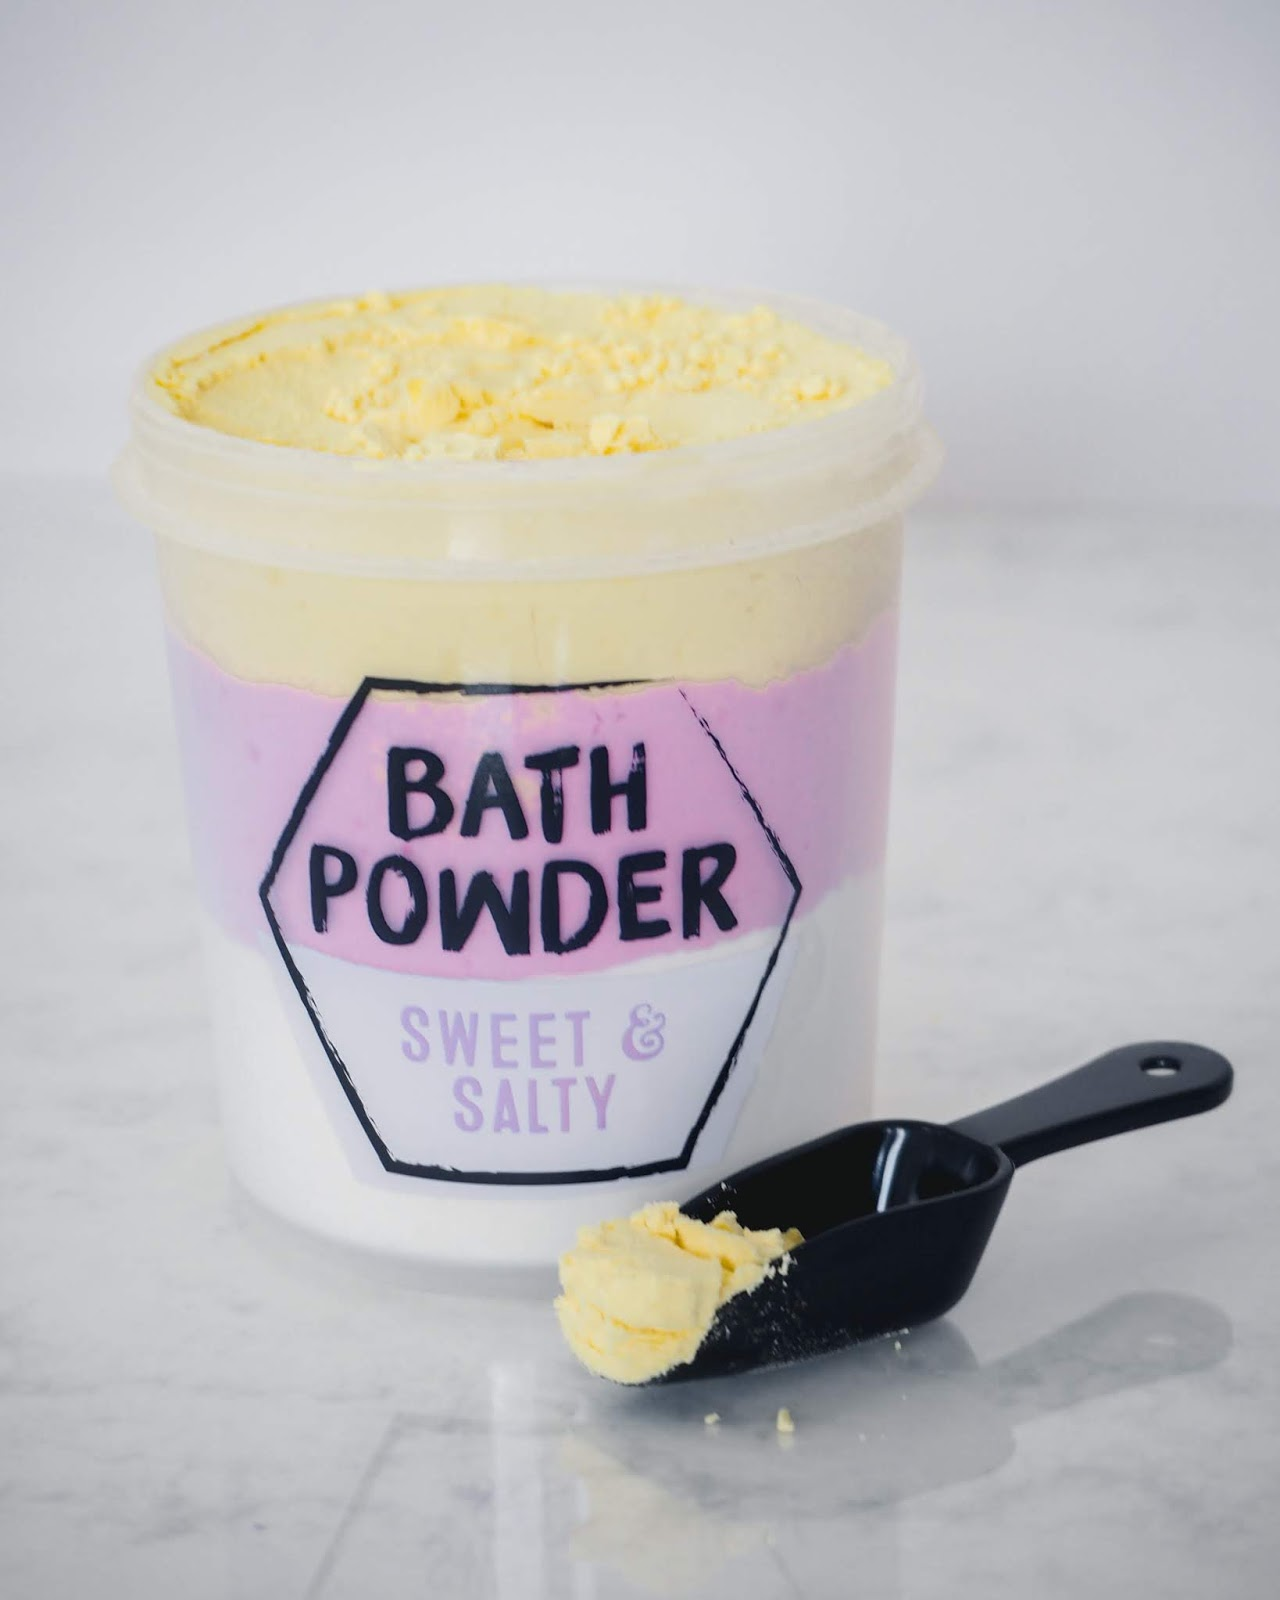 Asda Bath Powder